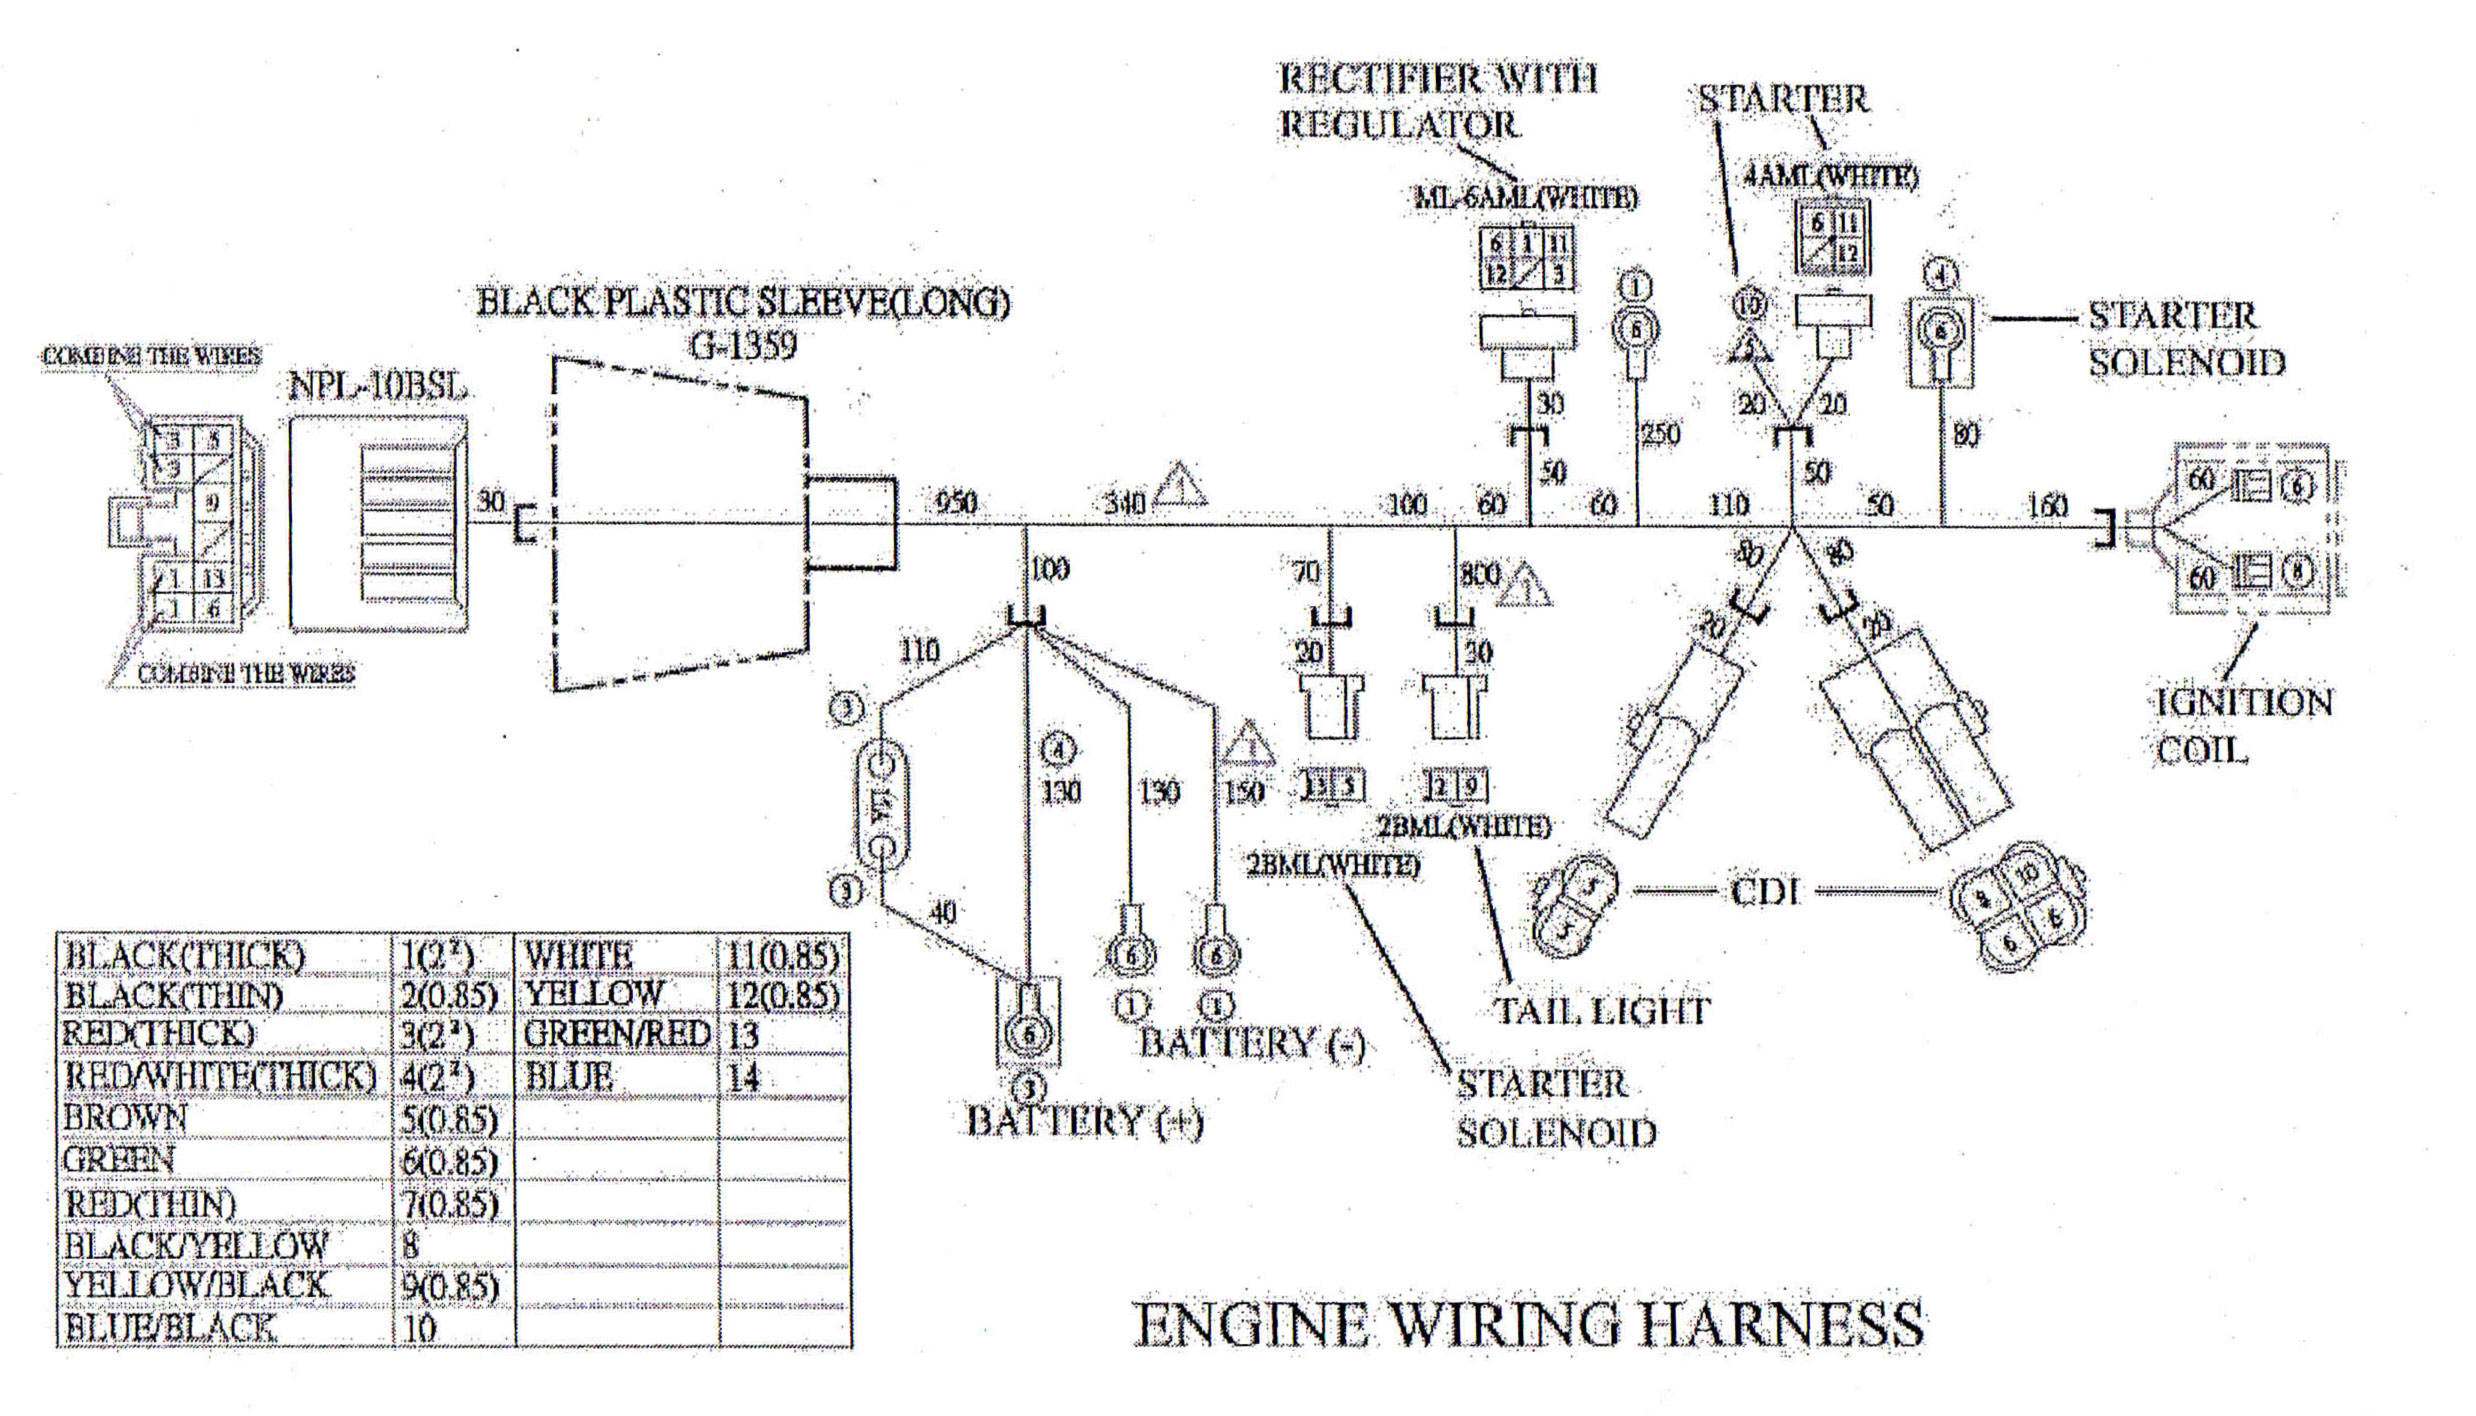 Go Kart Wiring Harness - Wiring Diagram M10 Hammerhead Go Kart Wiring Harness on